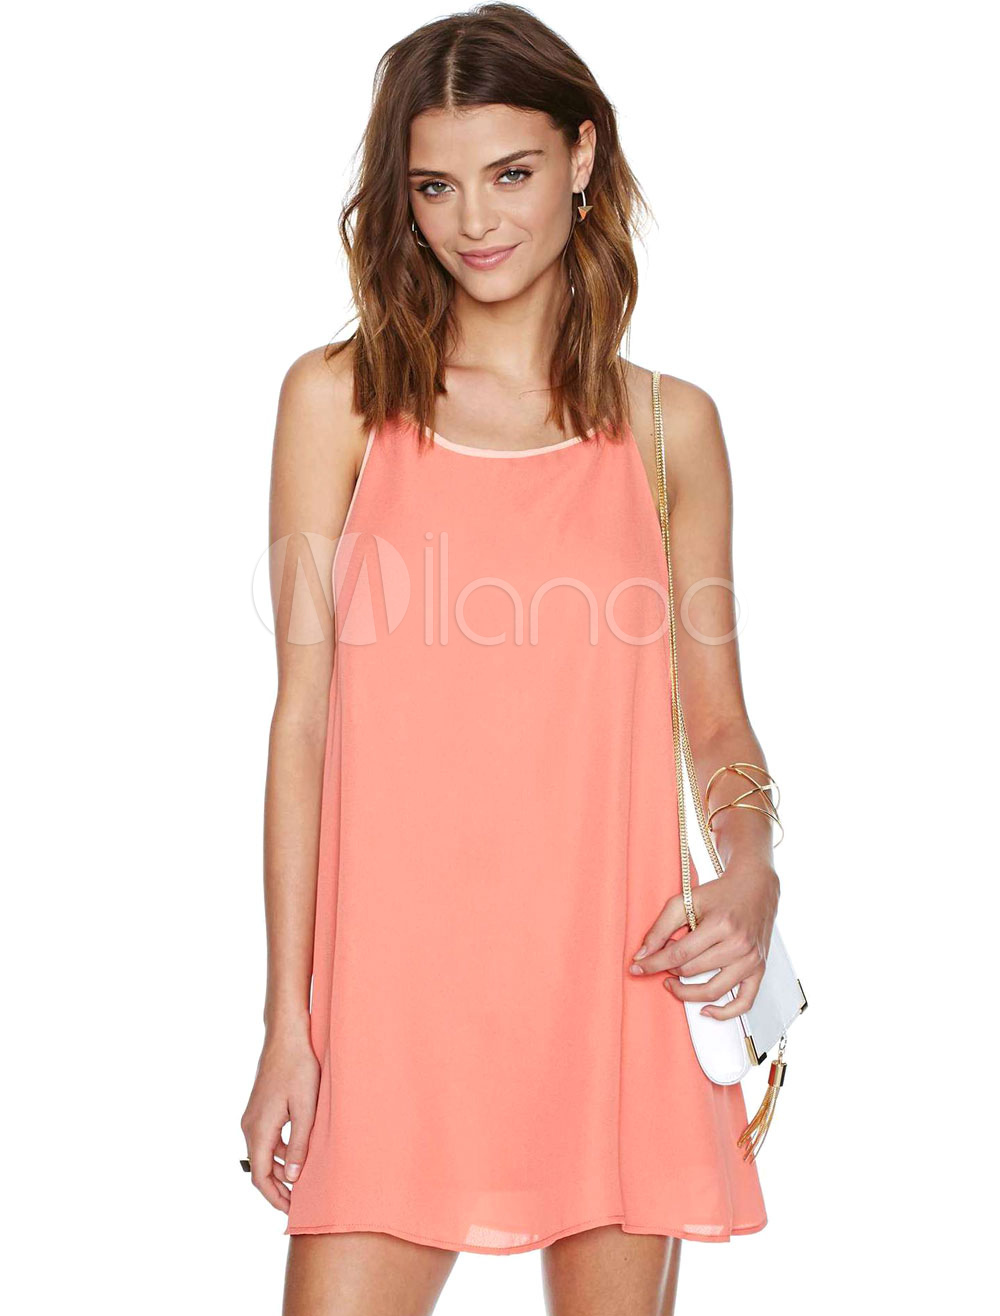 Buy Pink Shift Dress Straps Backless Chiffon Summer Dress for $17.99 in Milanoo store